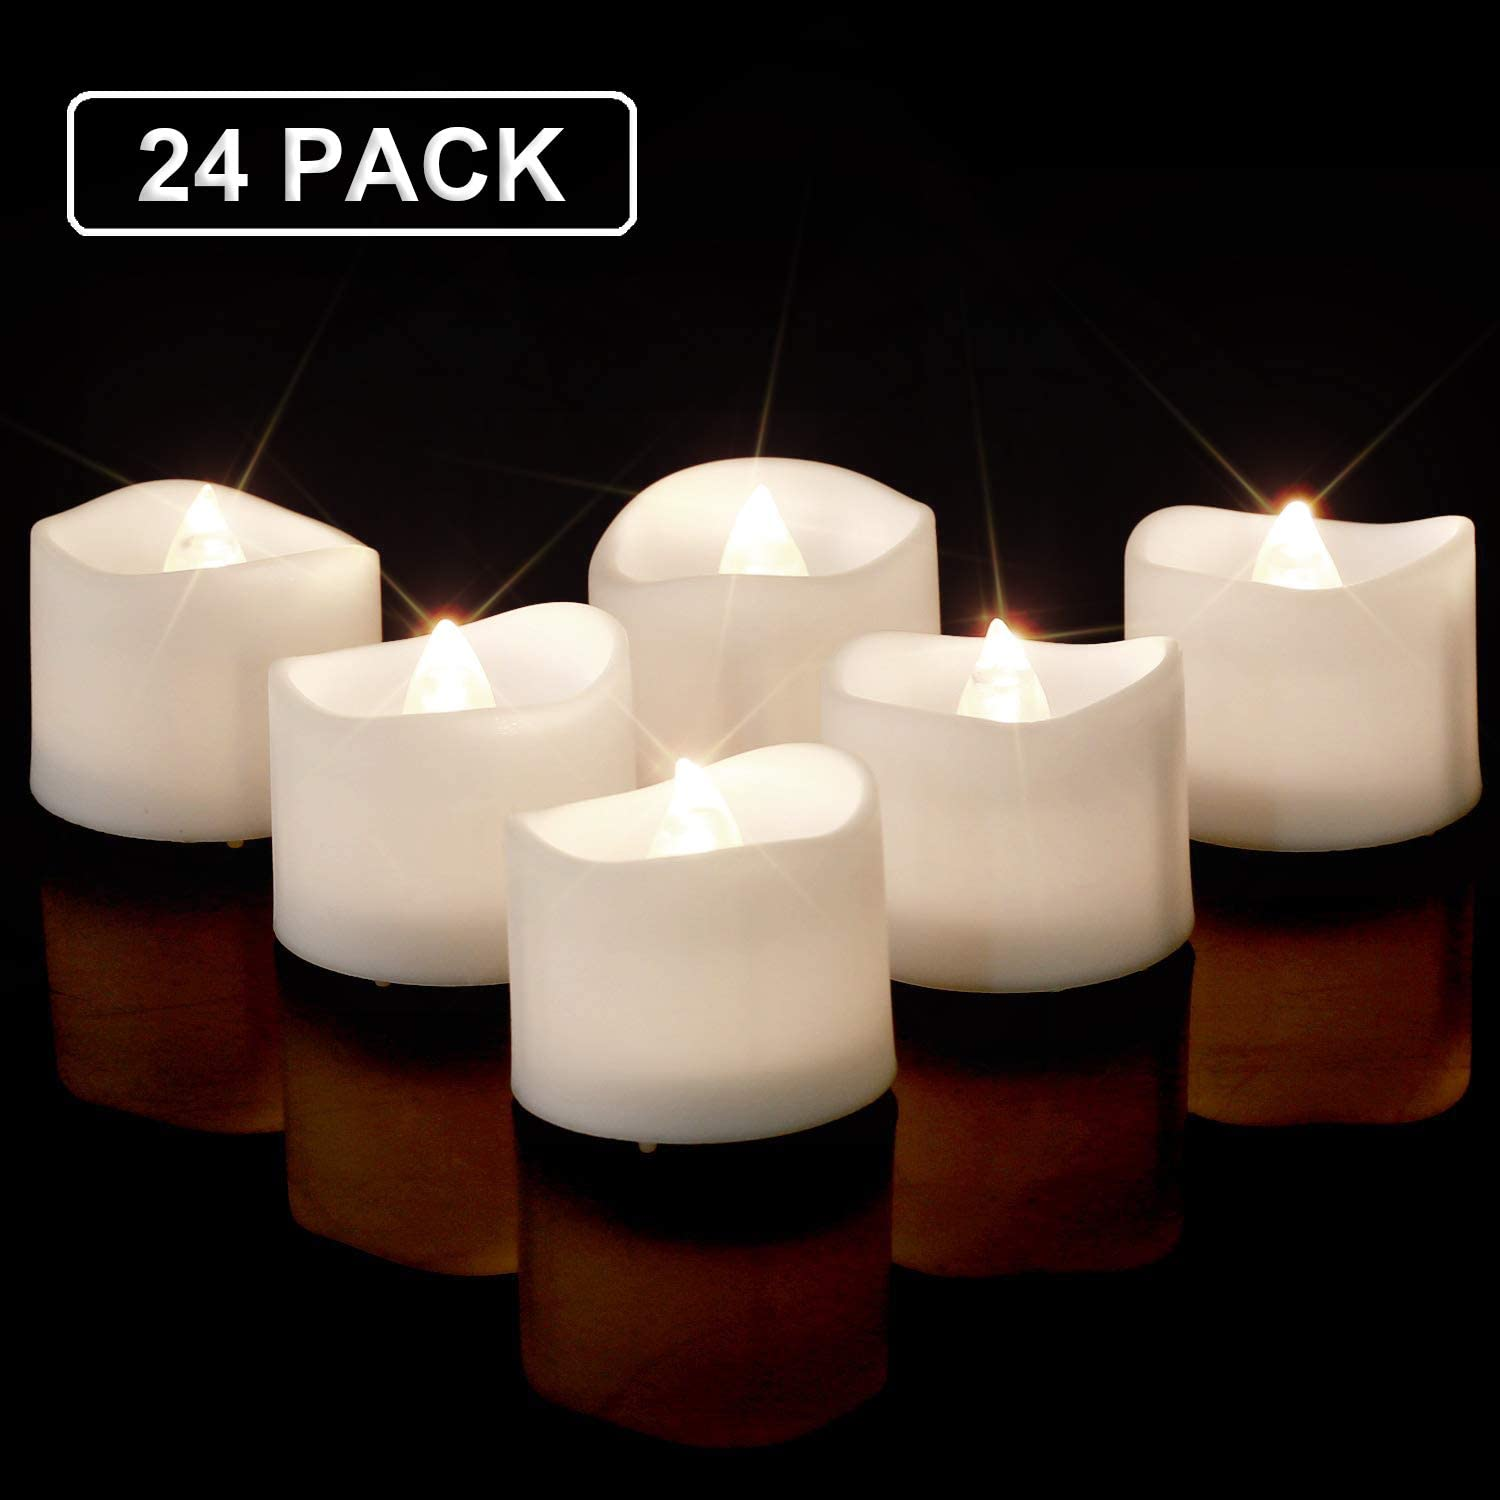 Homemory Bright White LED Tea Light Candles, Set of 24 Flickering LED Tea Lights, Battery Operated Tea Candles for Wedding Table Centerpieces, Mood Lighting and Home Decor